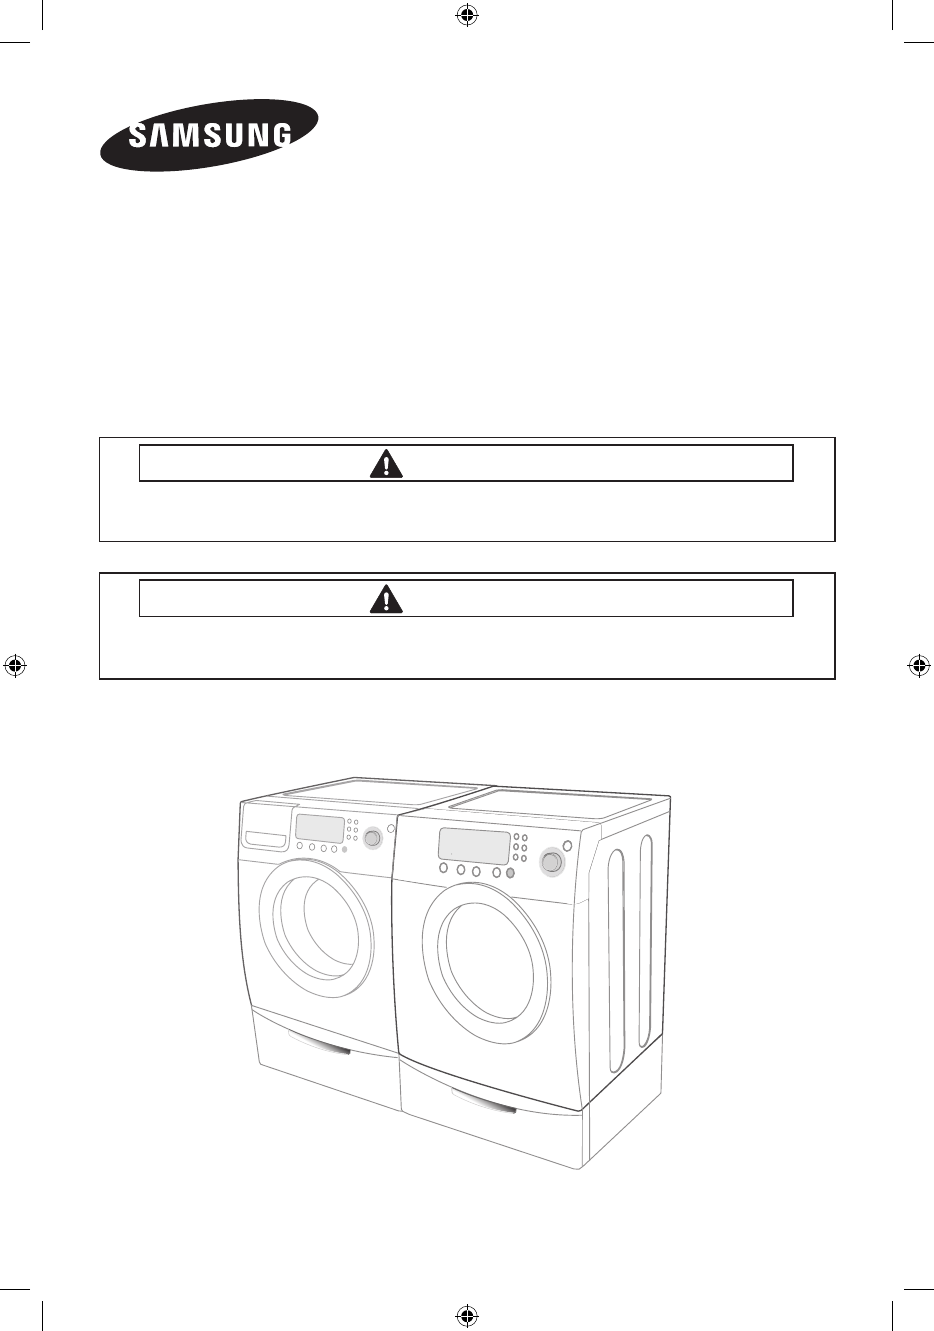 Samsung clothes dryer dv338 user guide manualsonline 1 clothes dryer pooptronica Image collections